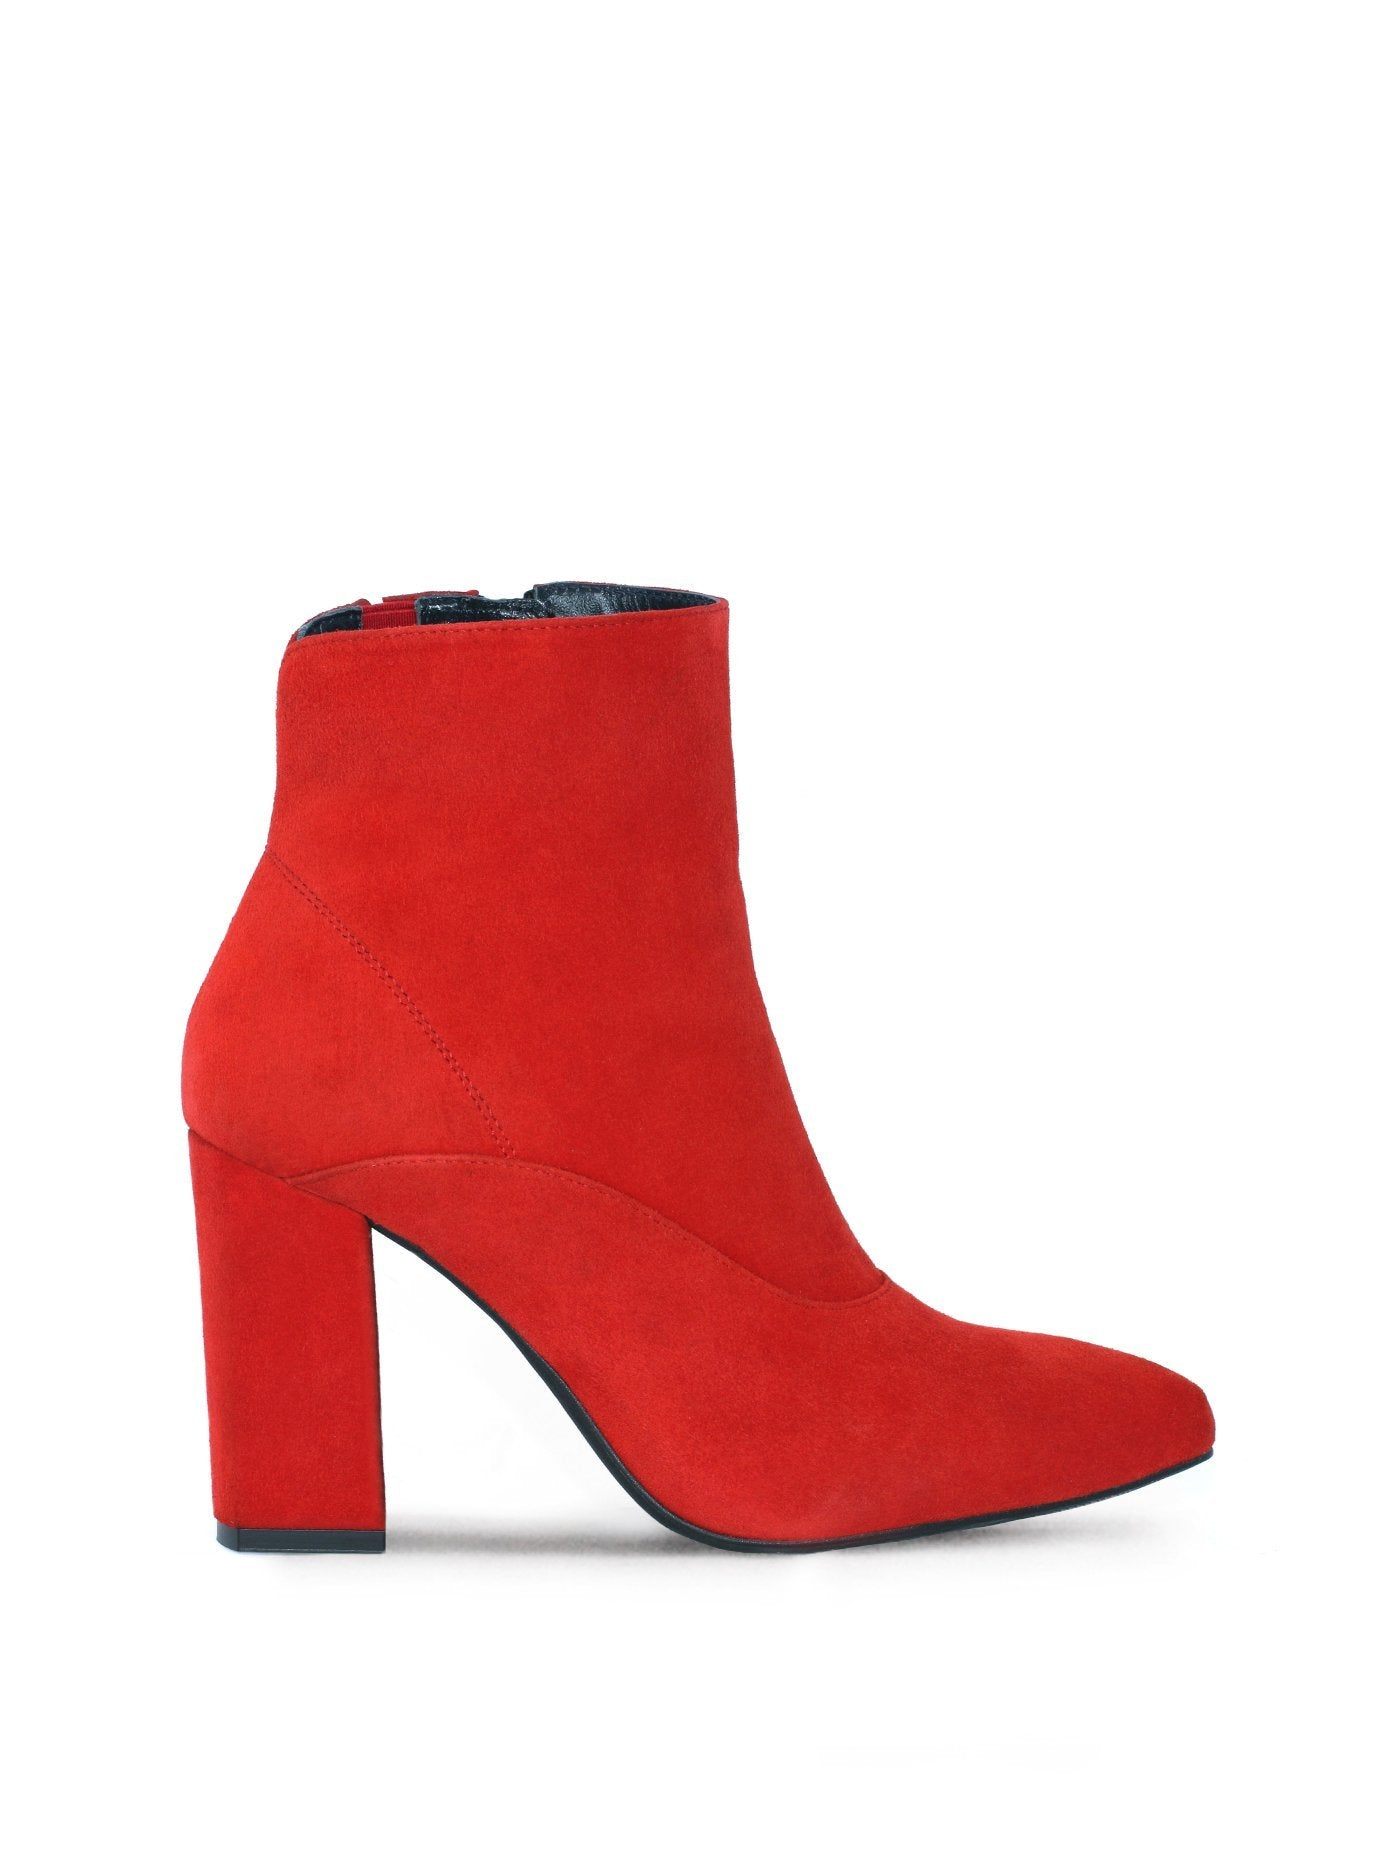 Dottie - Vermillion Red Suede